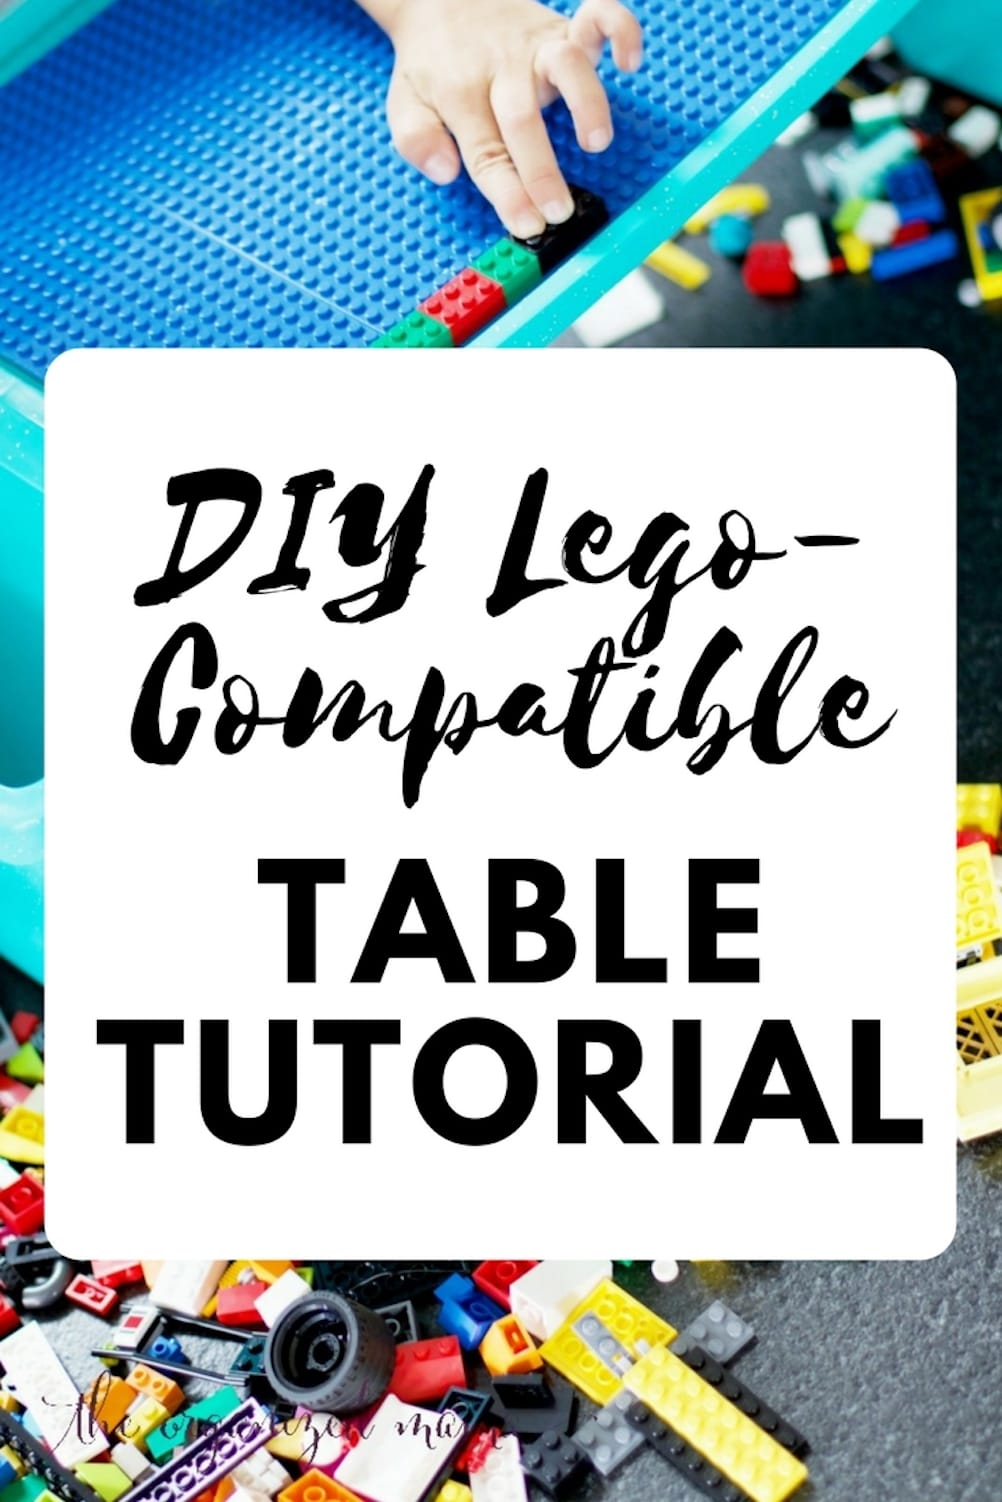 DIY Lego-Compatible Table Tutorial